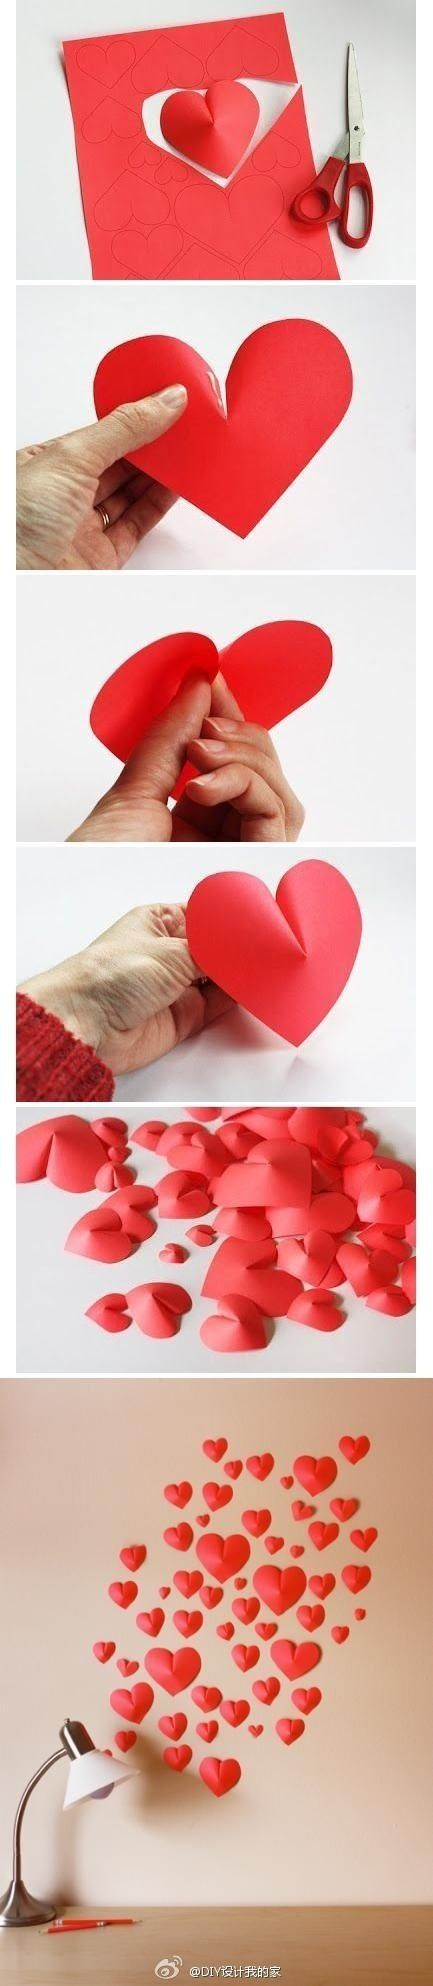 Creative way to make 3D hearts.